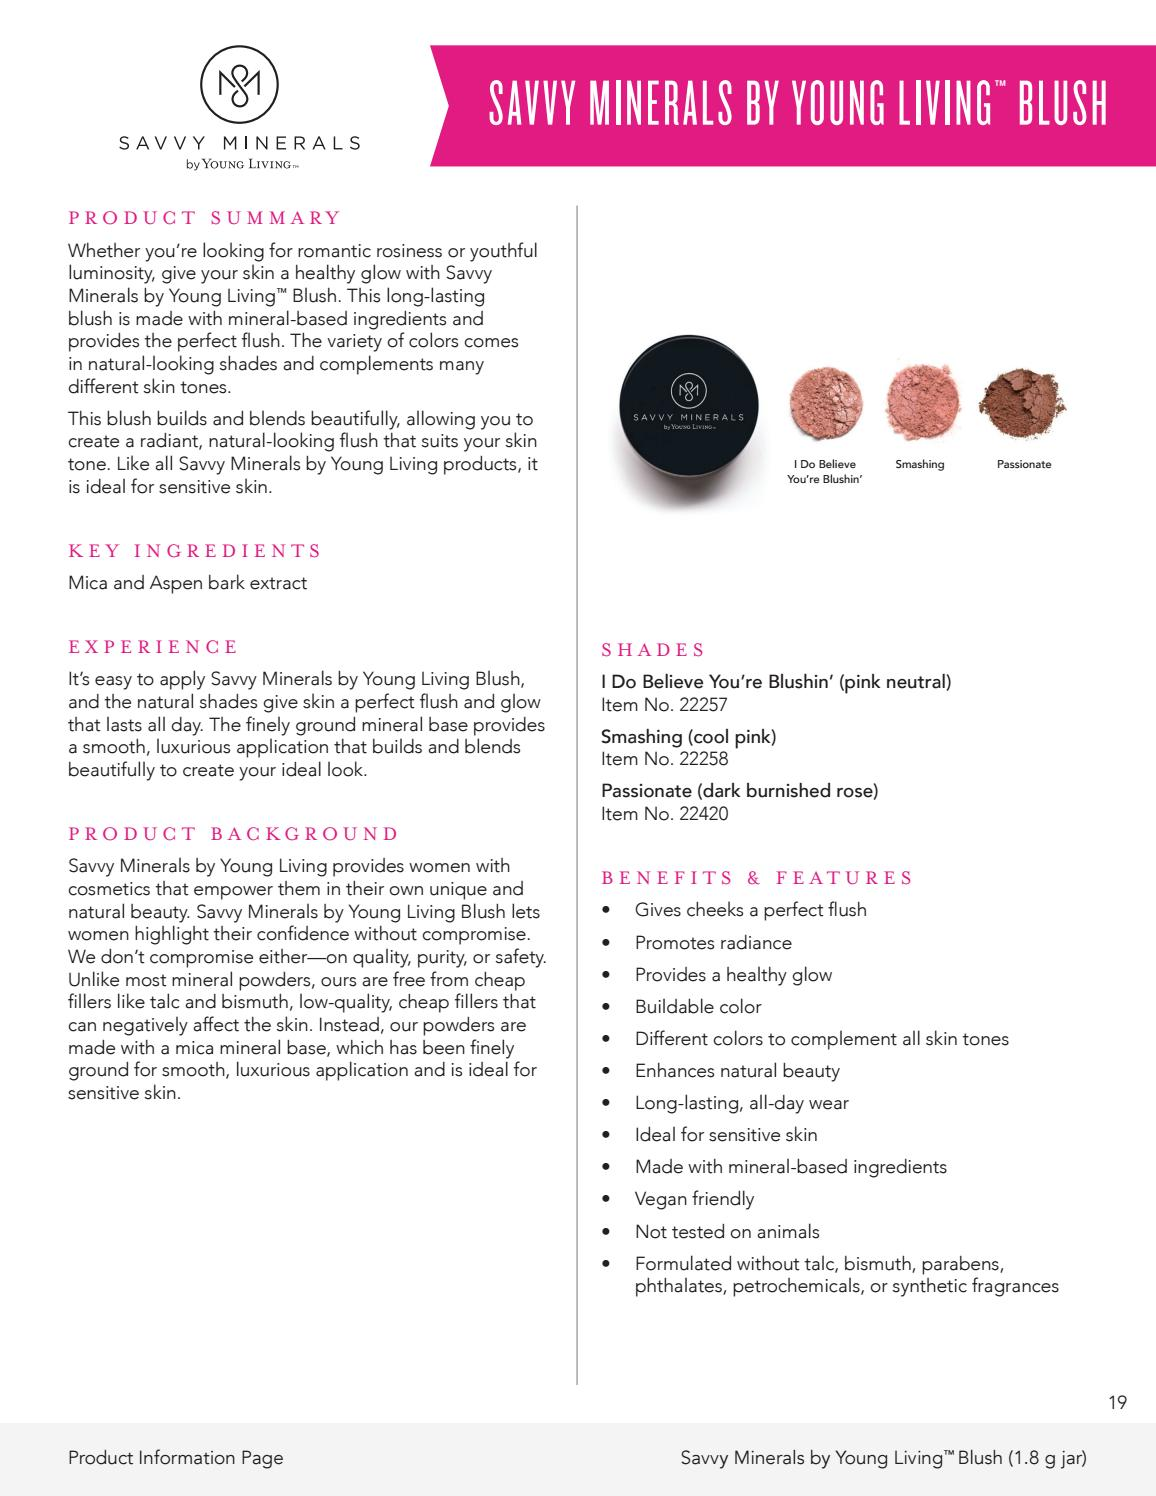 Savvy Minerals by Young Living™ Product Information by Young Living